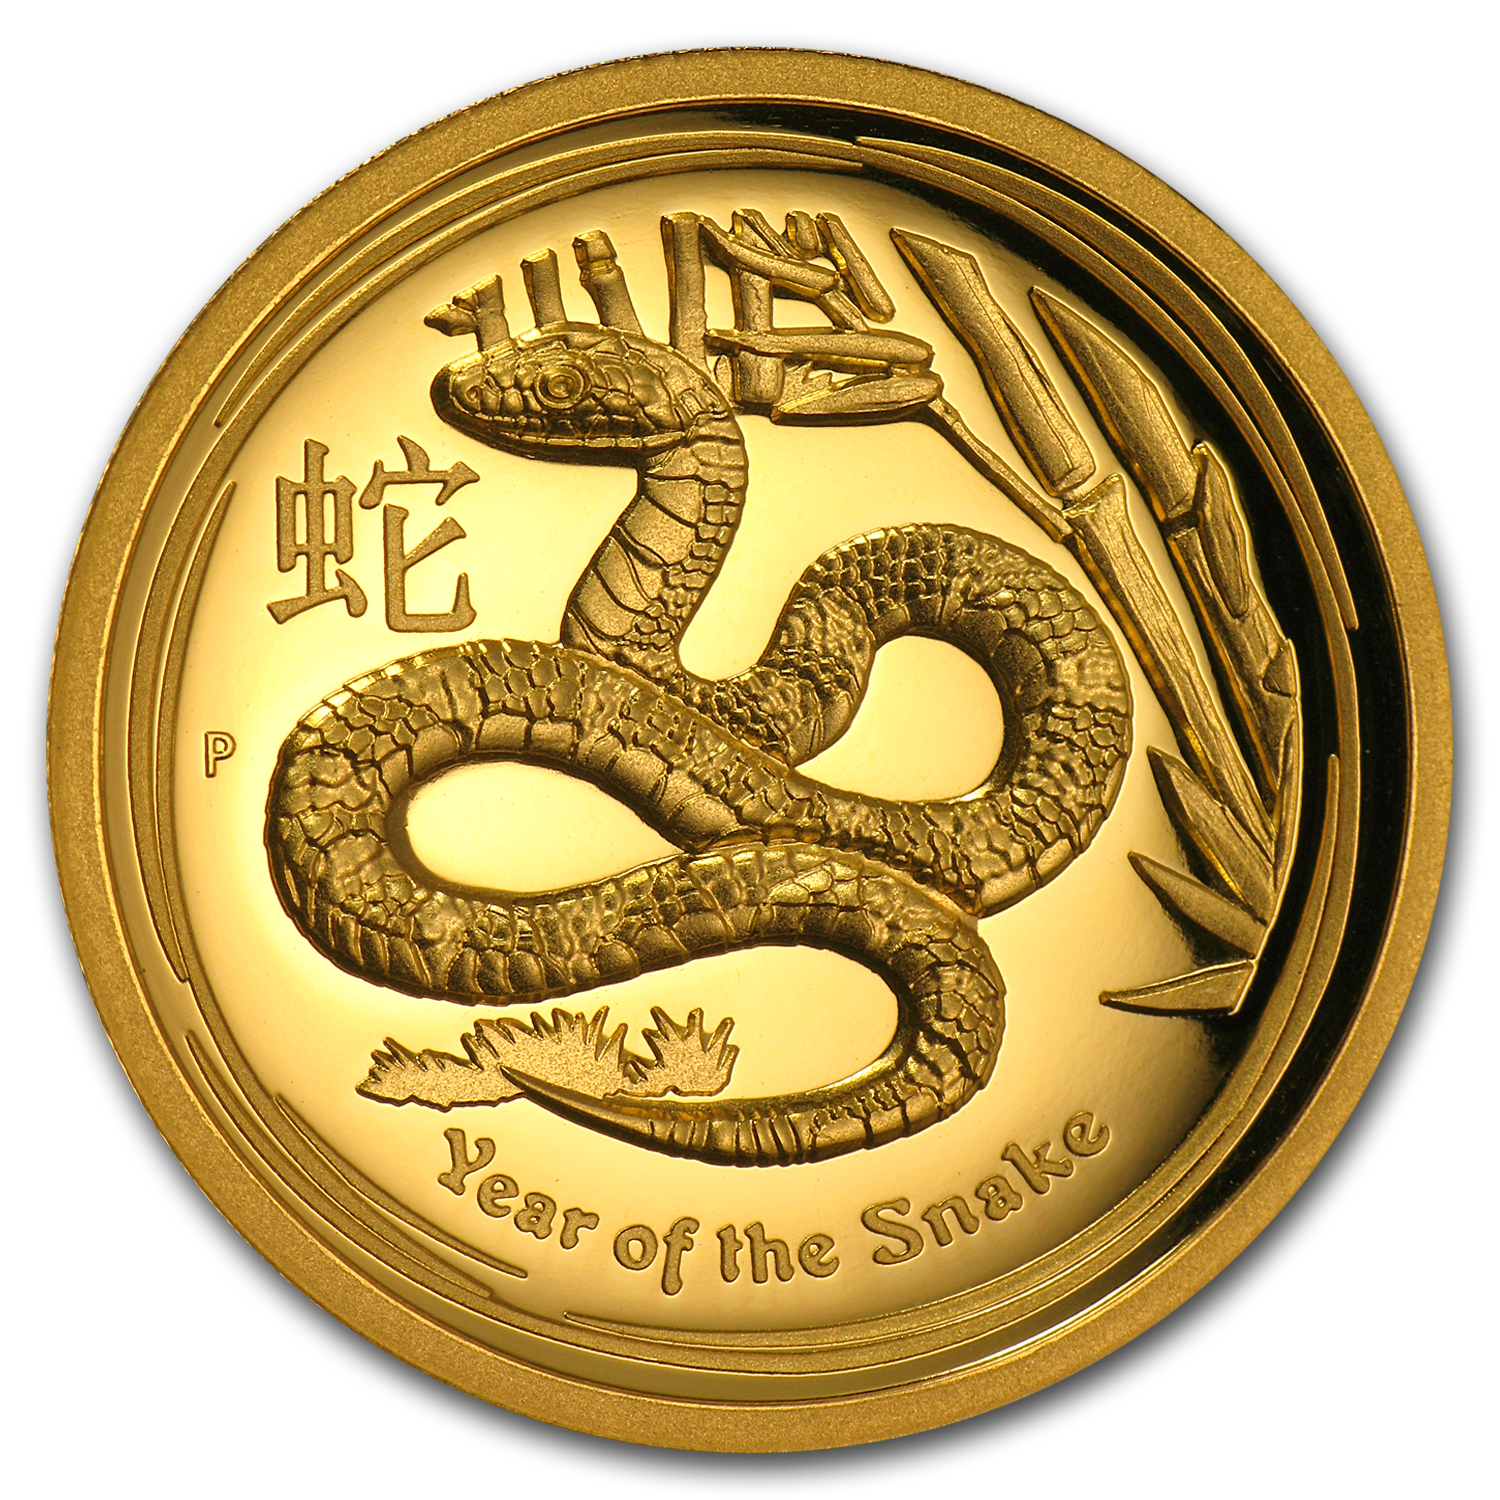 2013 Australia 1oz Ultra High Relief Proof Gold Snake (Box & Coa)